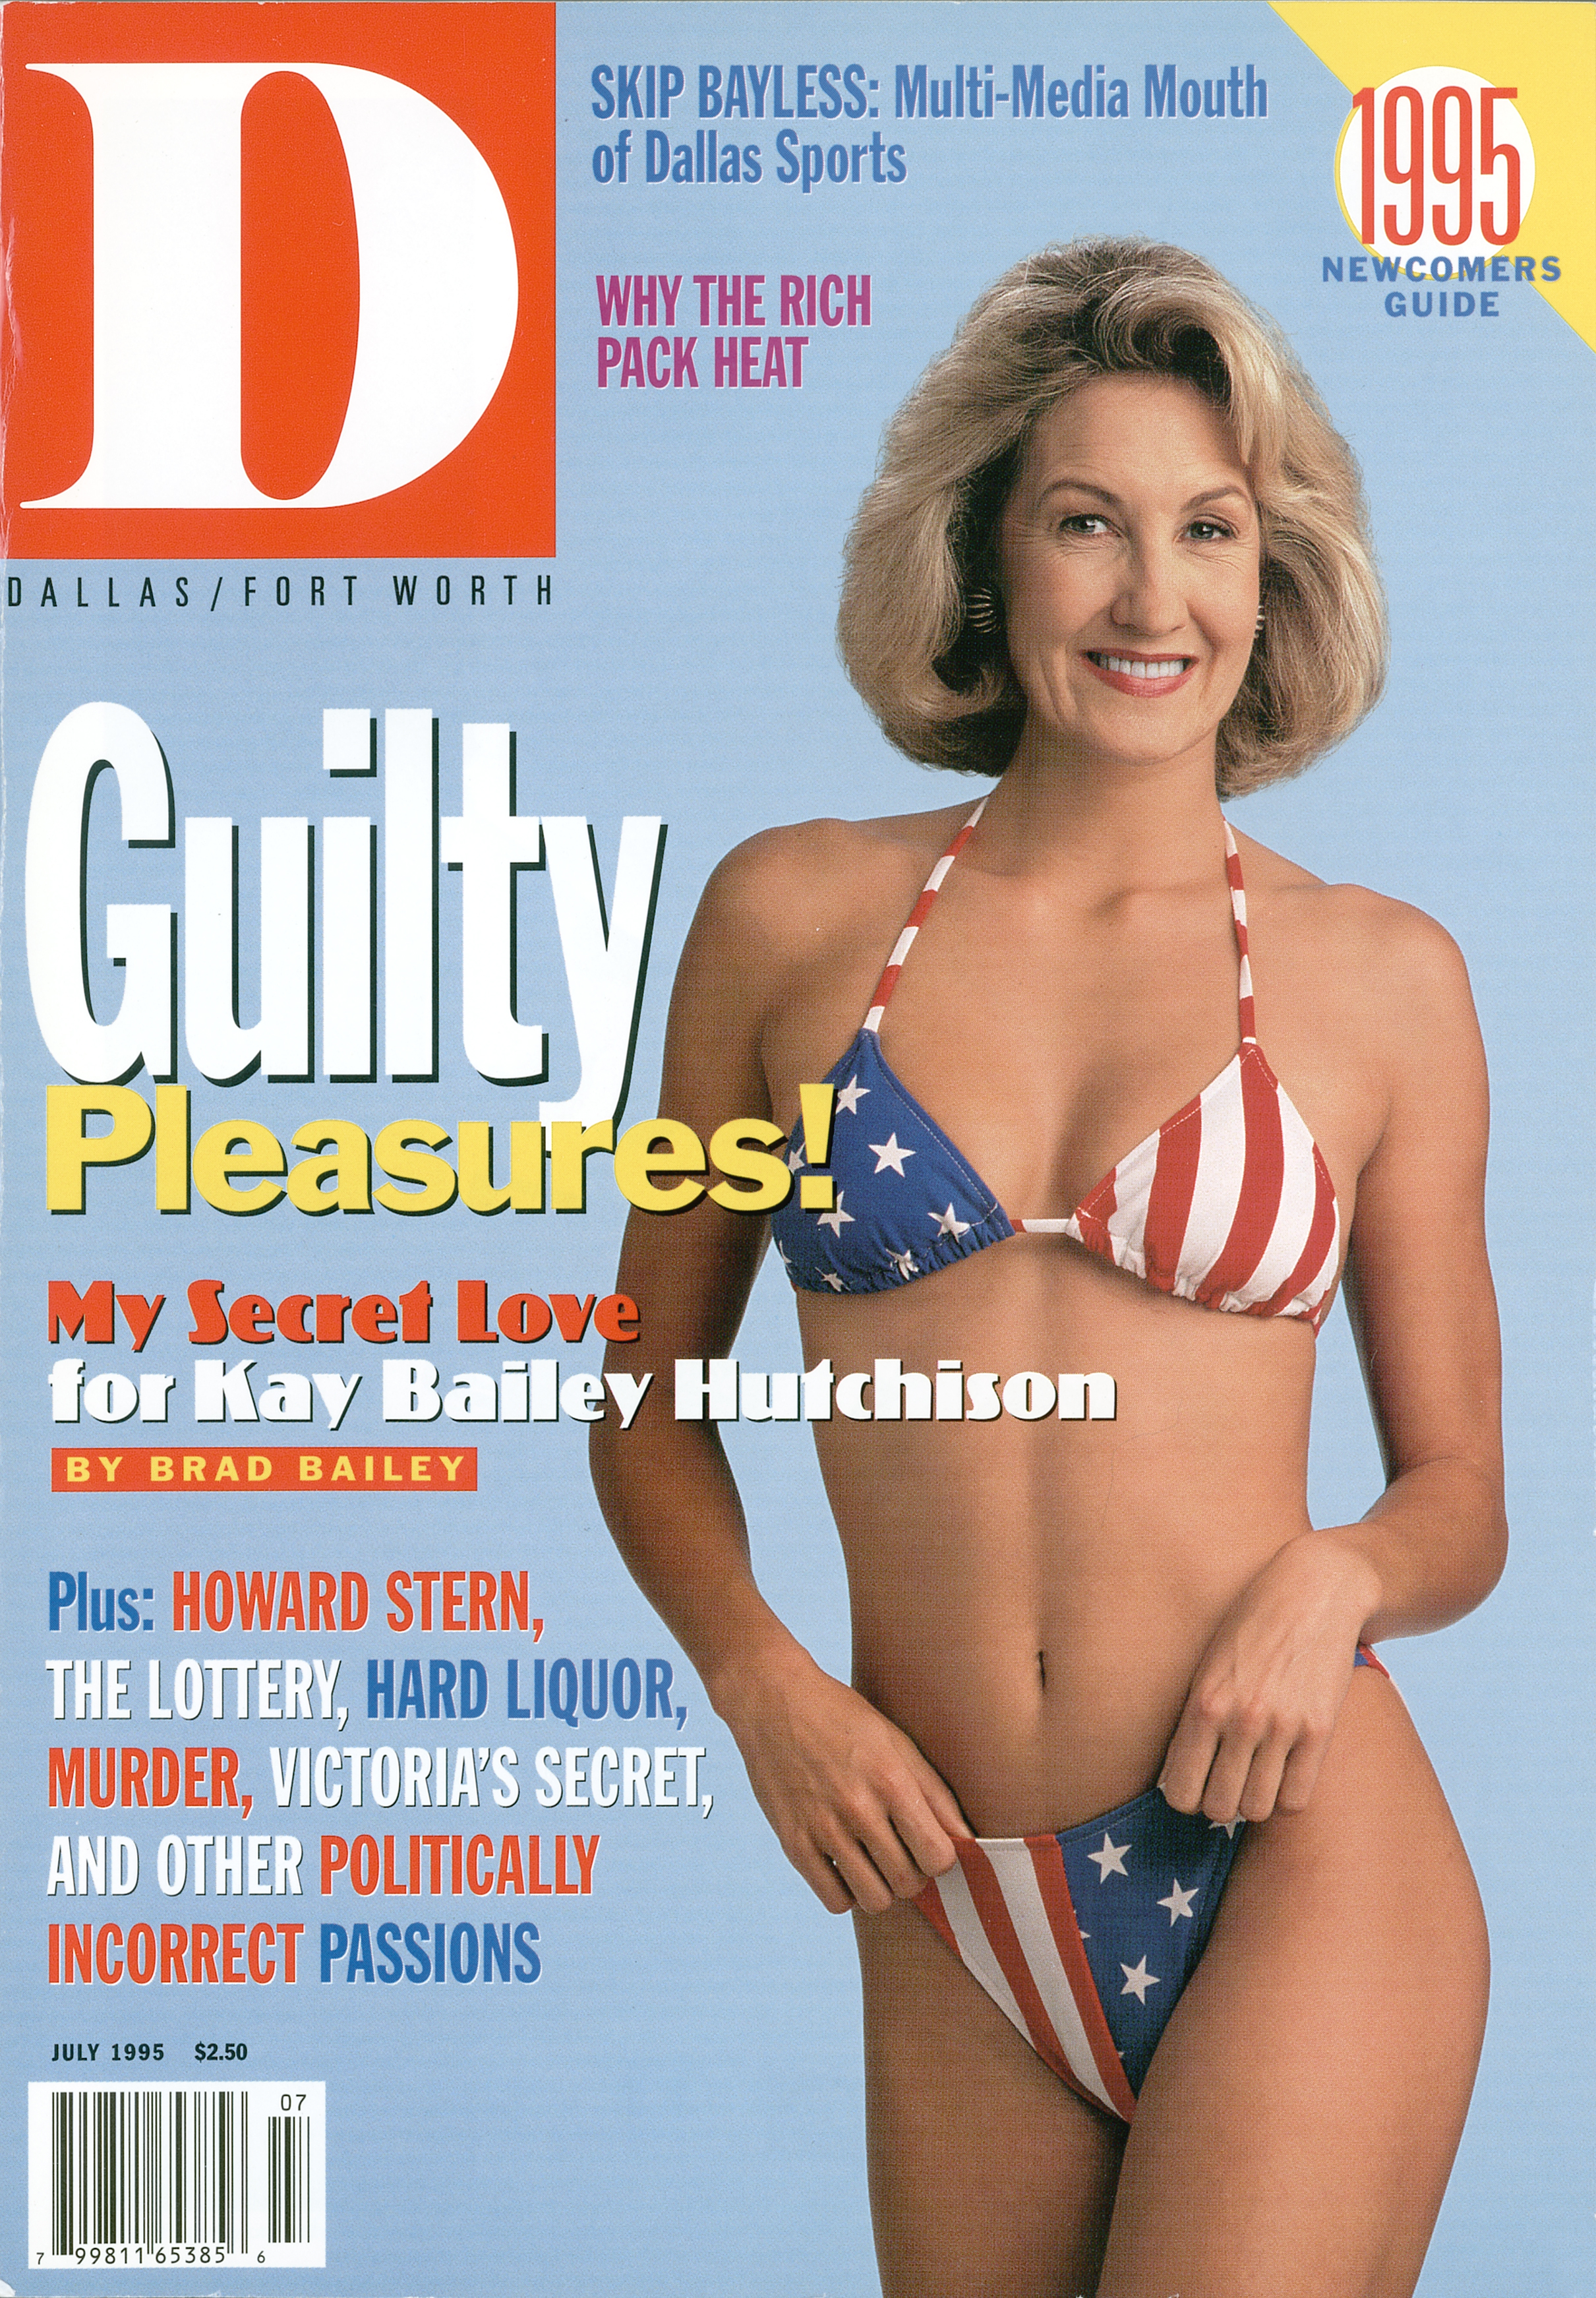 July 1995 cover